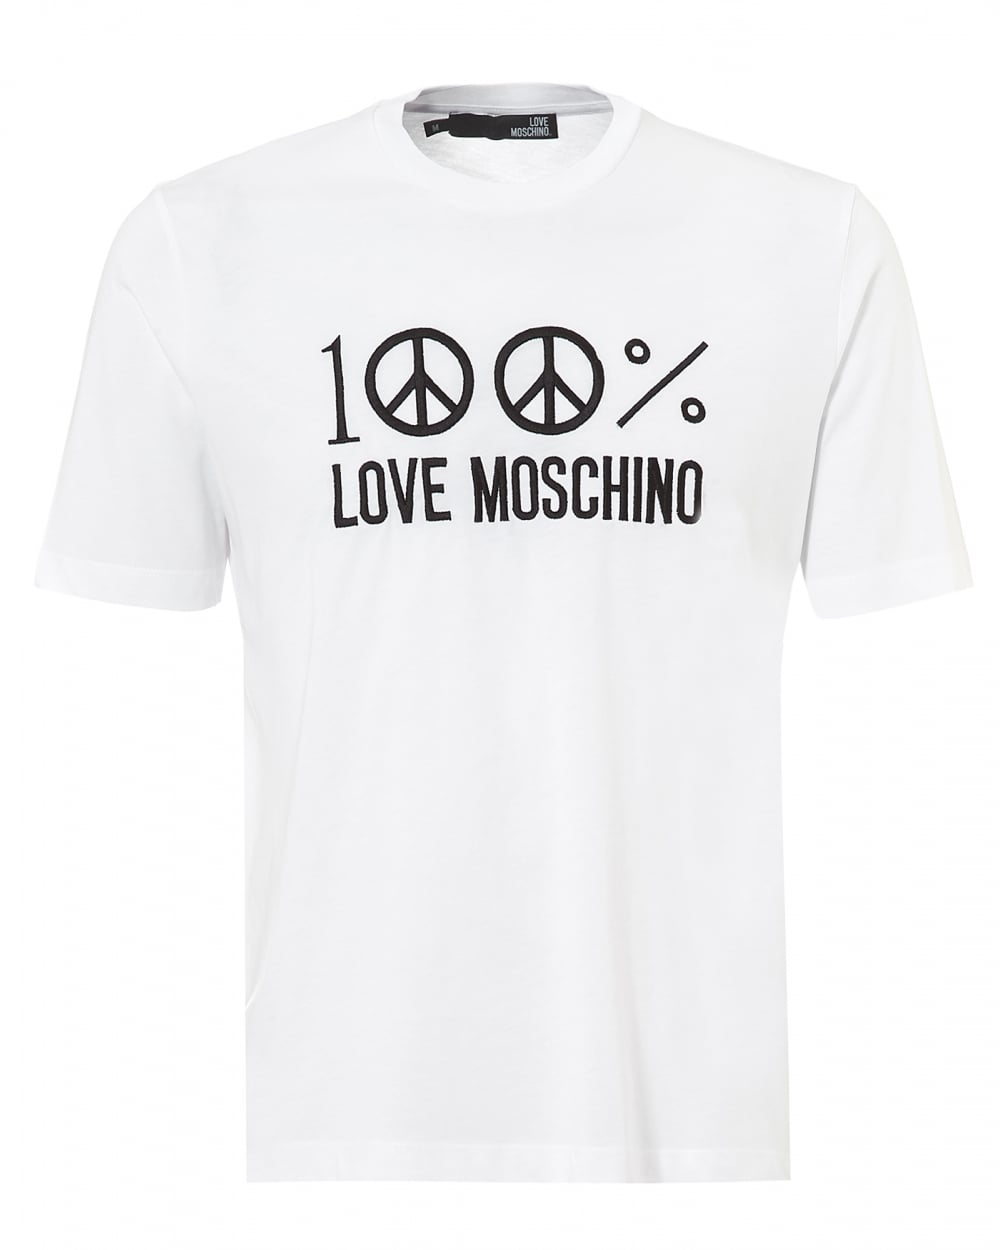 love moschino mens 100 love moschino t shirt regular fit. Black Bedroom Furniture Sets. Home Design Ideas